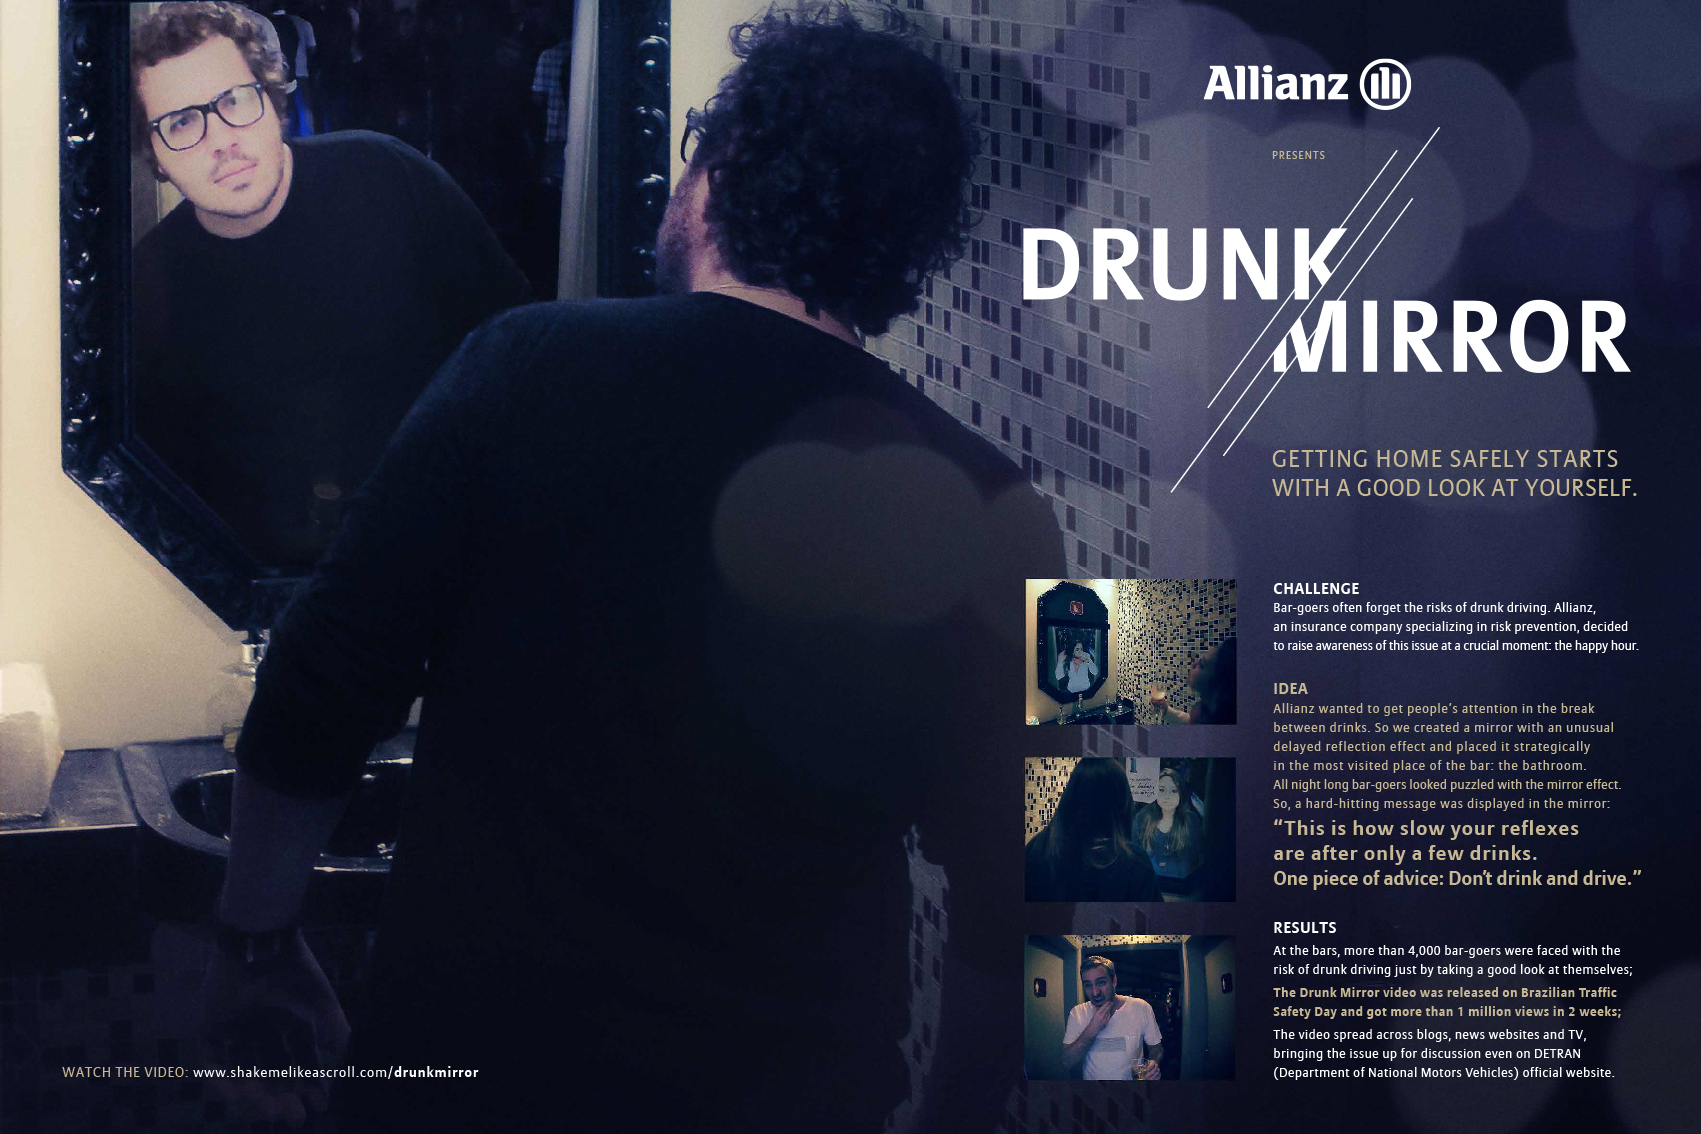 DRUNKMIRROR_allianz_cannes_7_site_o.jpg